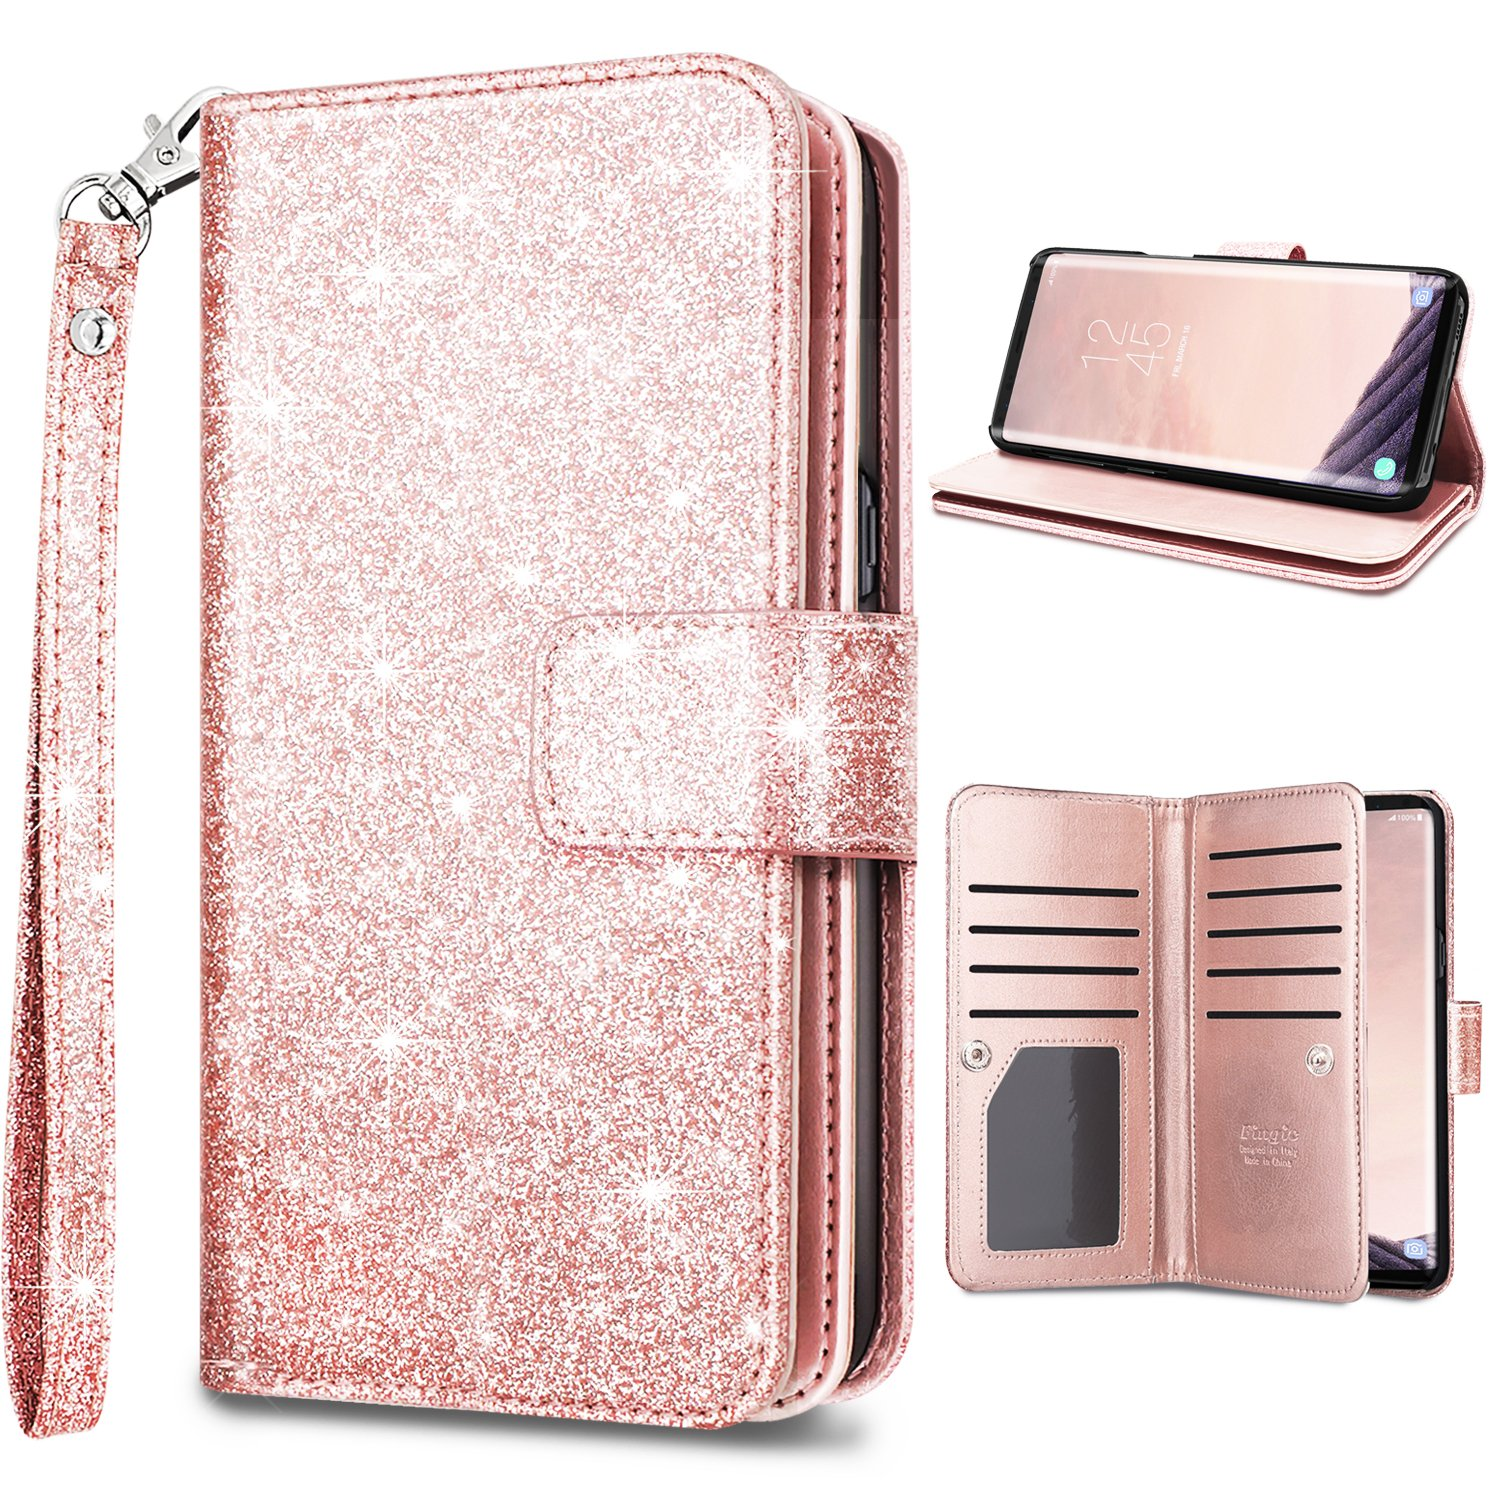 S9 Plus Wallet Case, Galaxy S9 Plus Case, Fingic Glitter Sparkle Cover 9 Card Holder PU Leather Detachable Wrist Strap Wallet Case for Women Cover for Samsung Galaxy S9 Plus (6.2 inch), Rose Gold